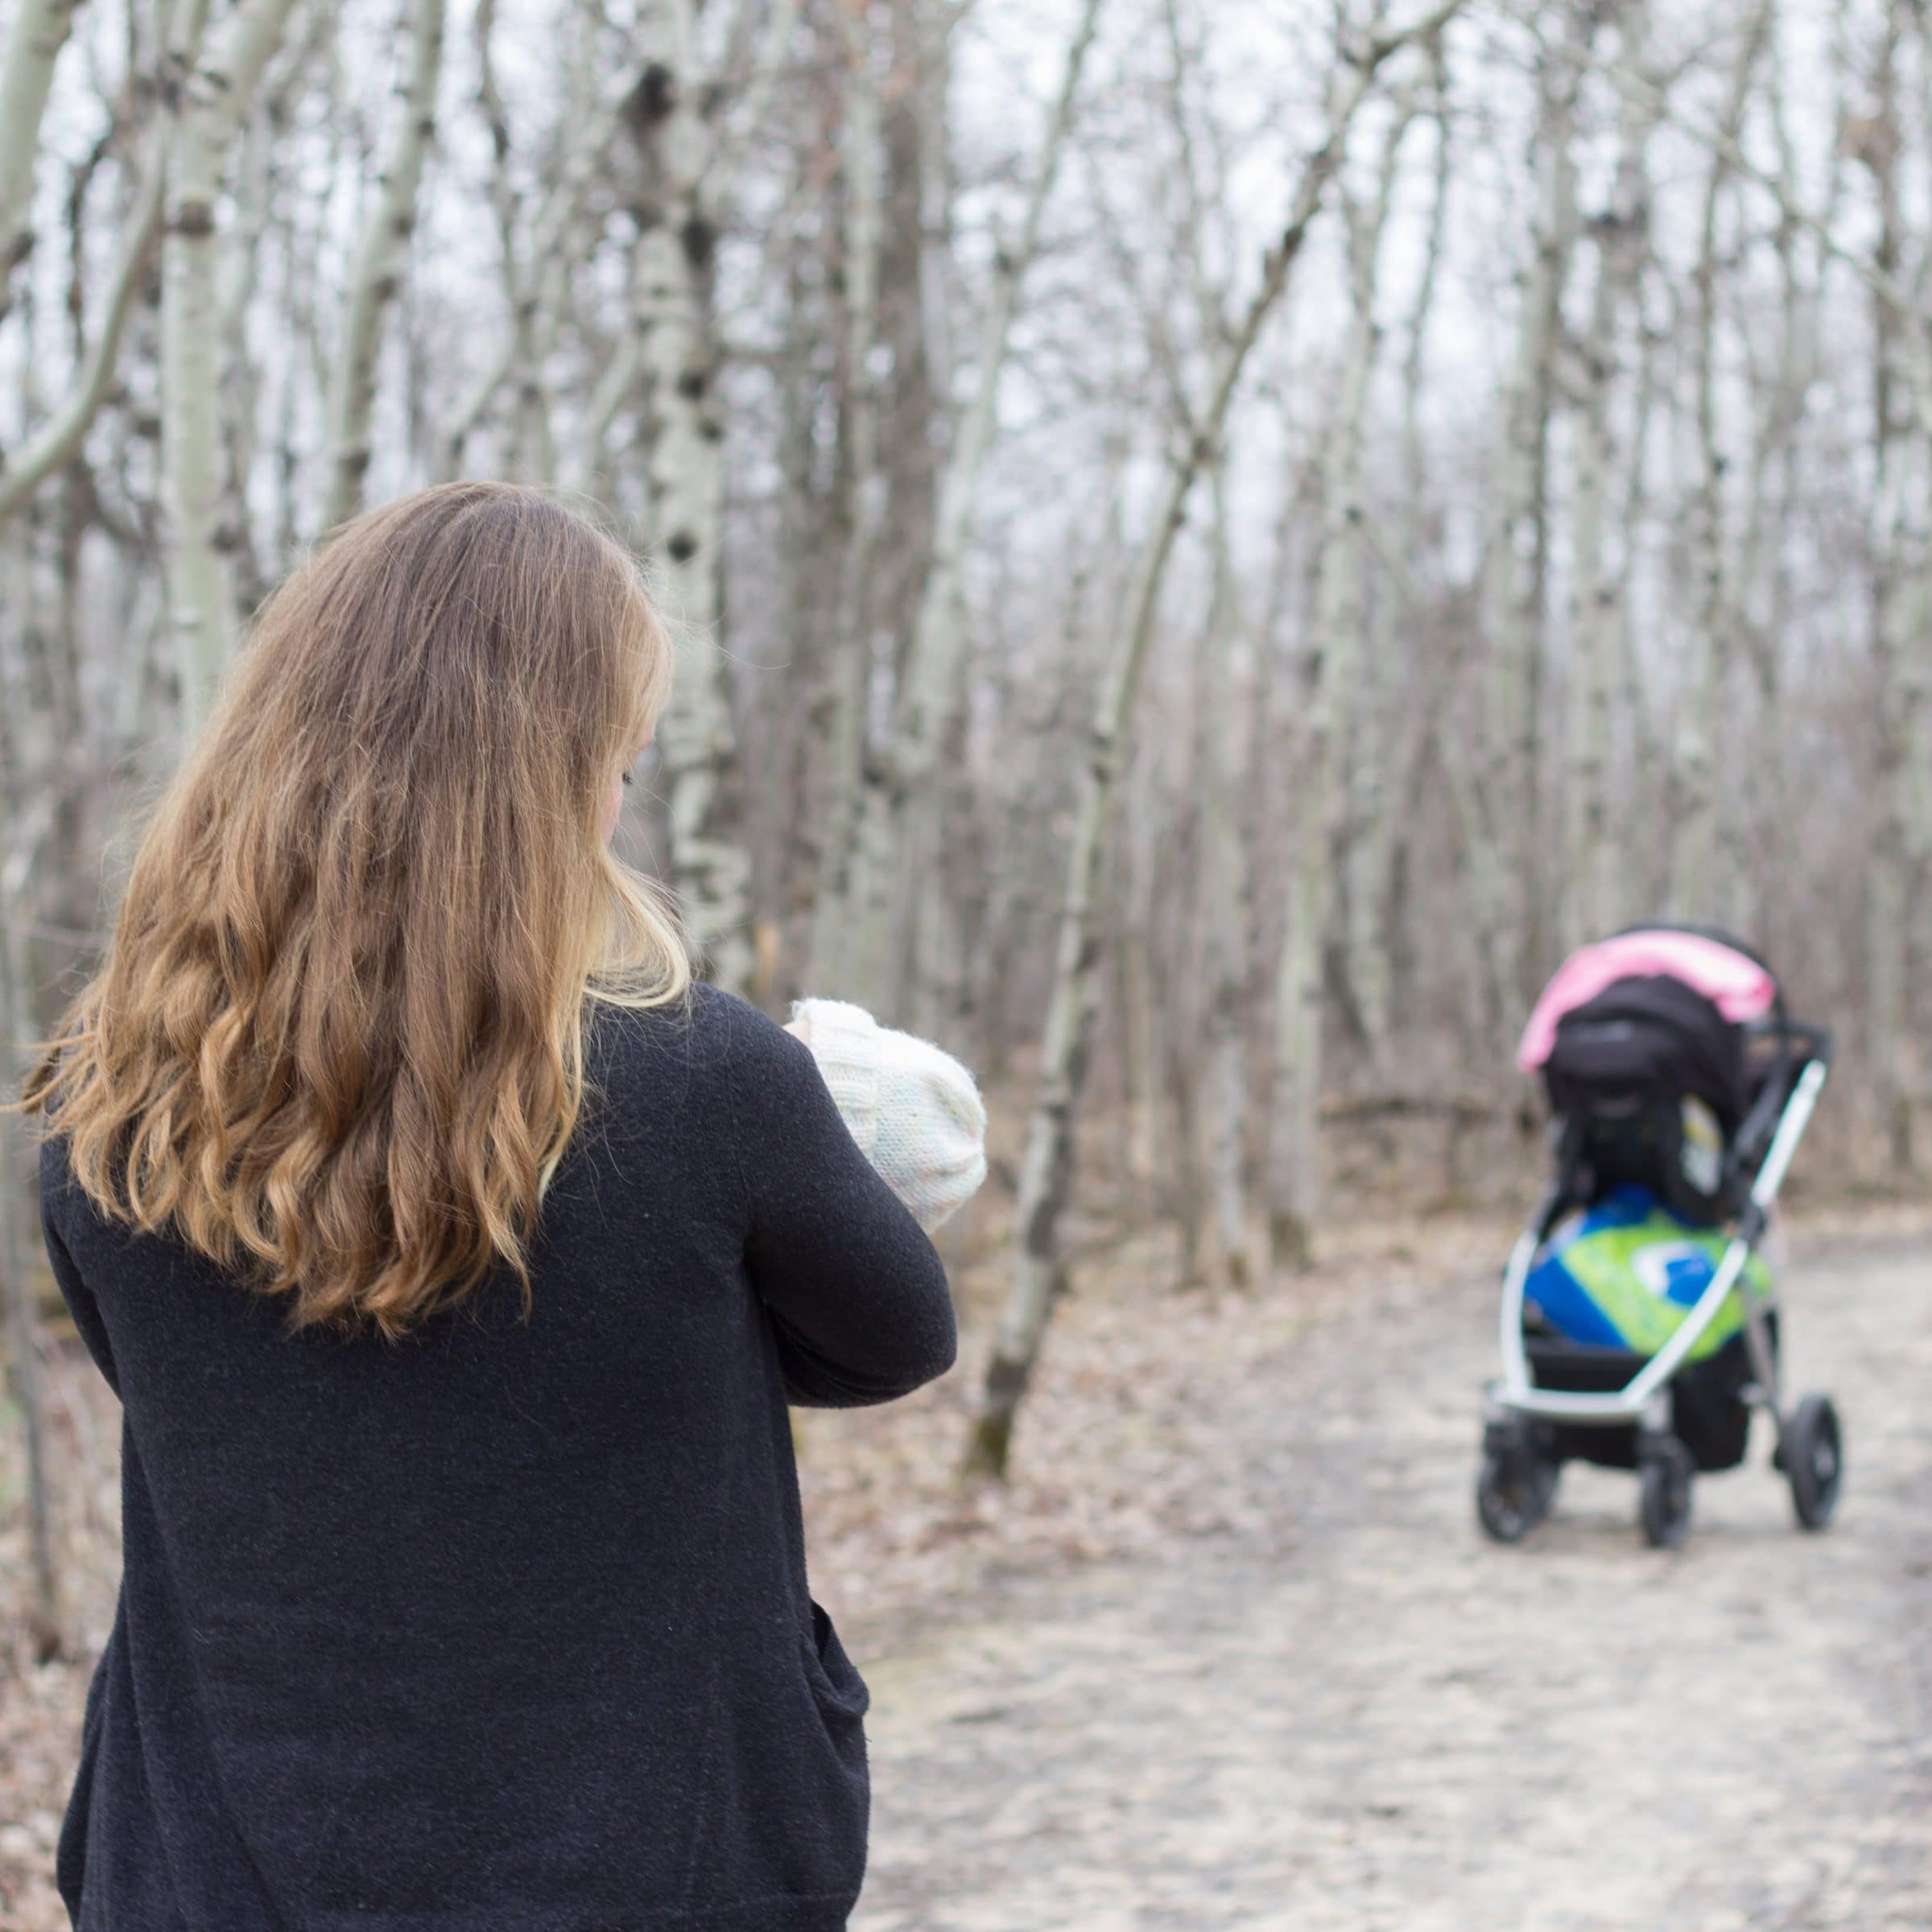 An adult hold their baby in their arms. They stand in a fall forest bare of leaves.